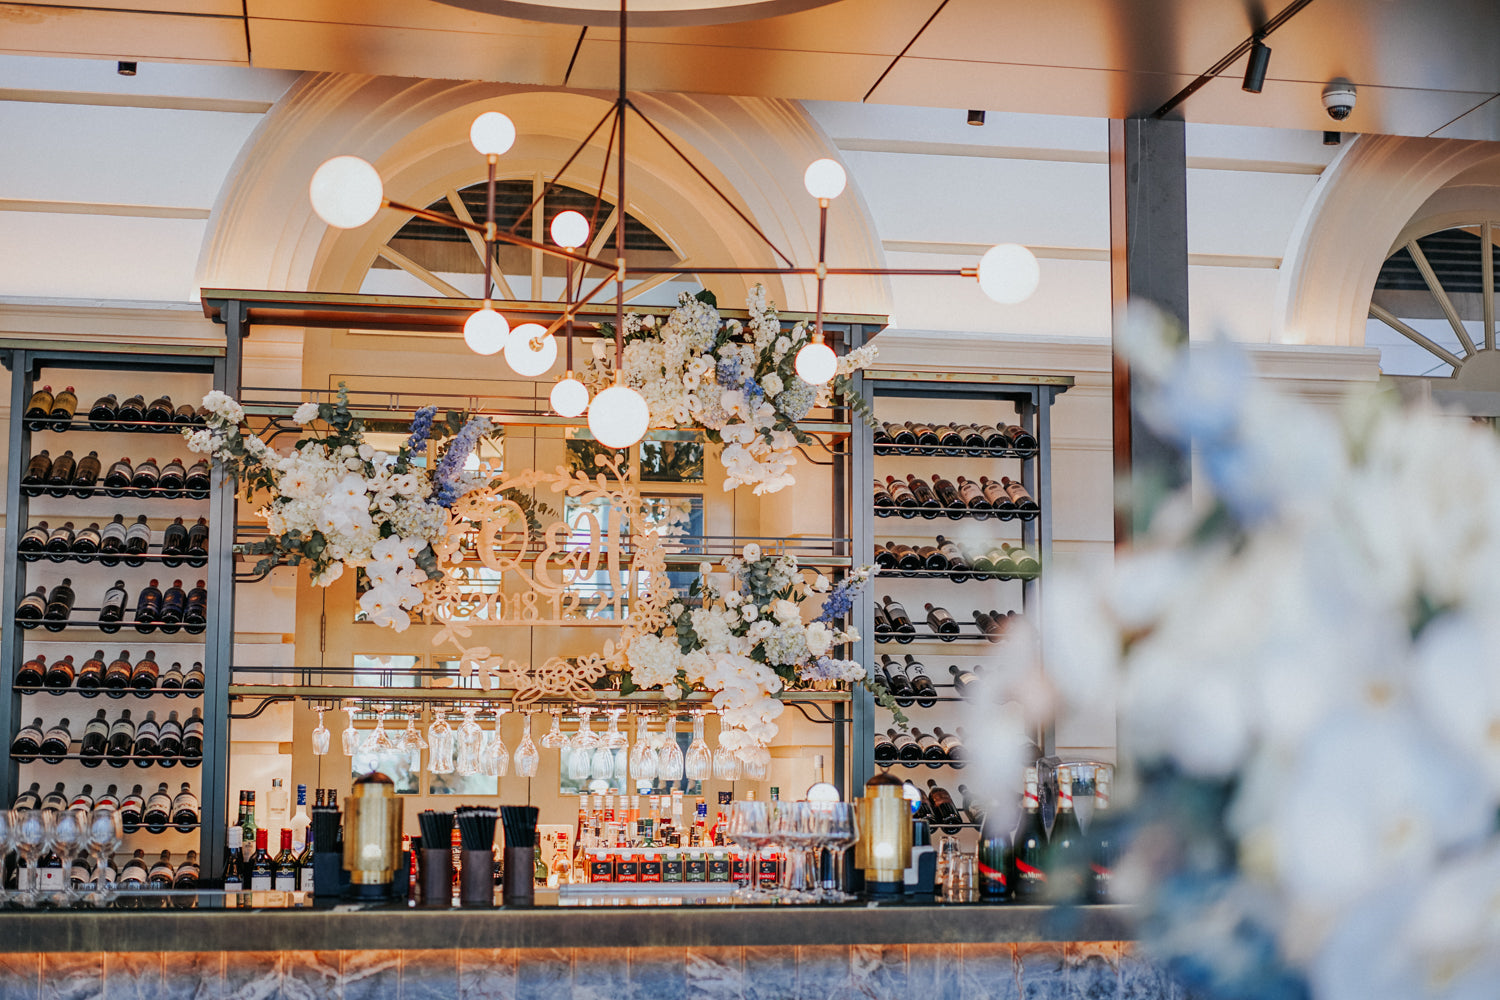 ACM's Empress bar counter decorated with white florals next to wine bottles